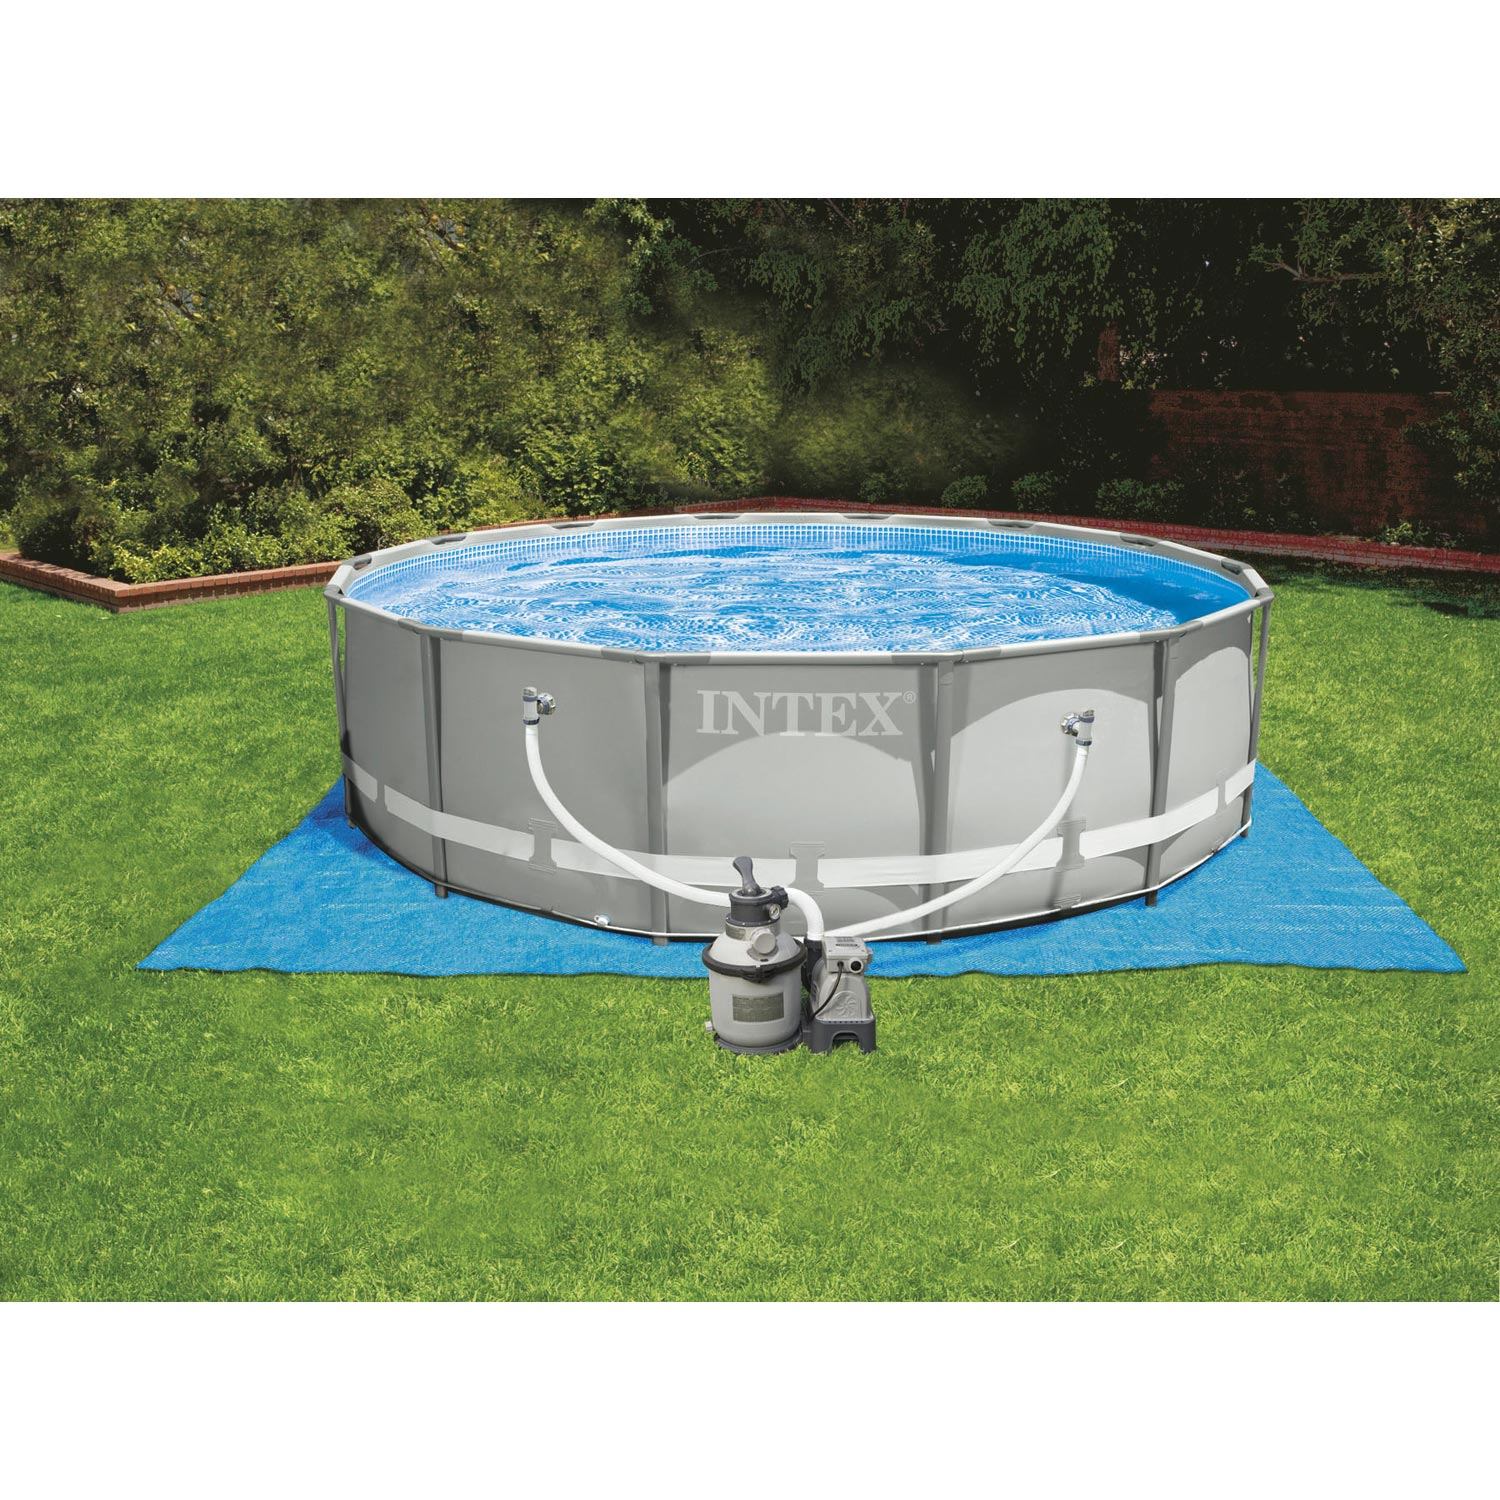 Piscine hors sol autoportante tubulaire ultra frame intex for Cloyes sur le loir piscine